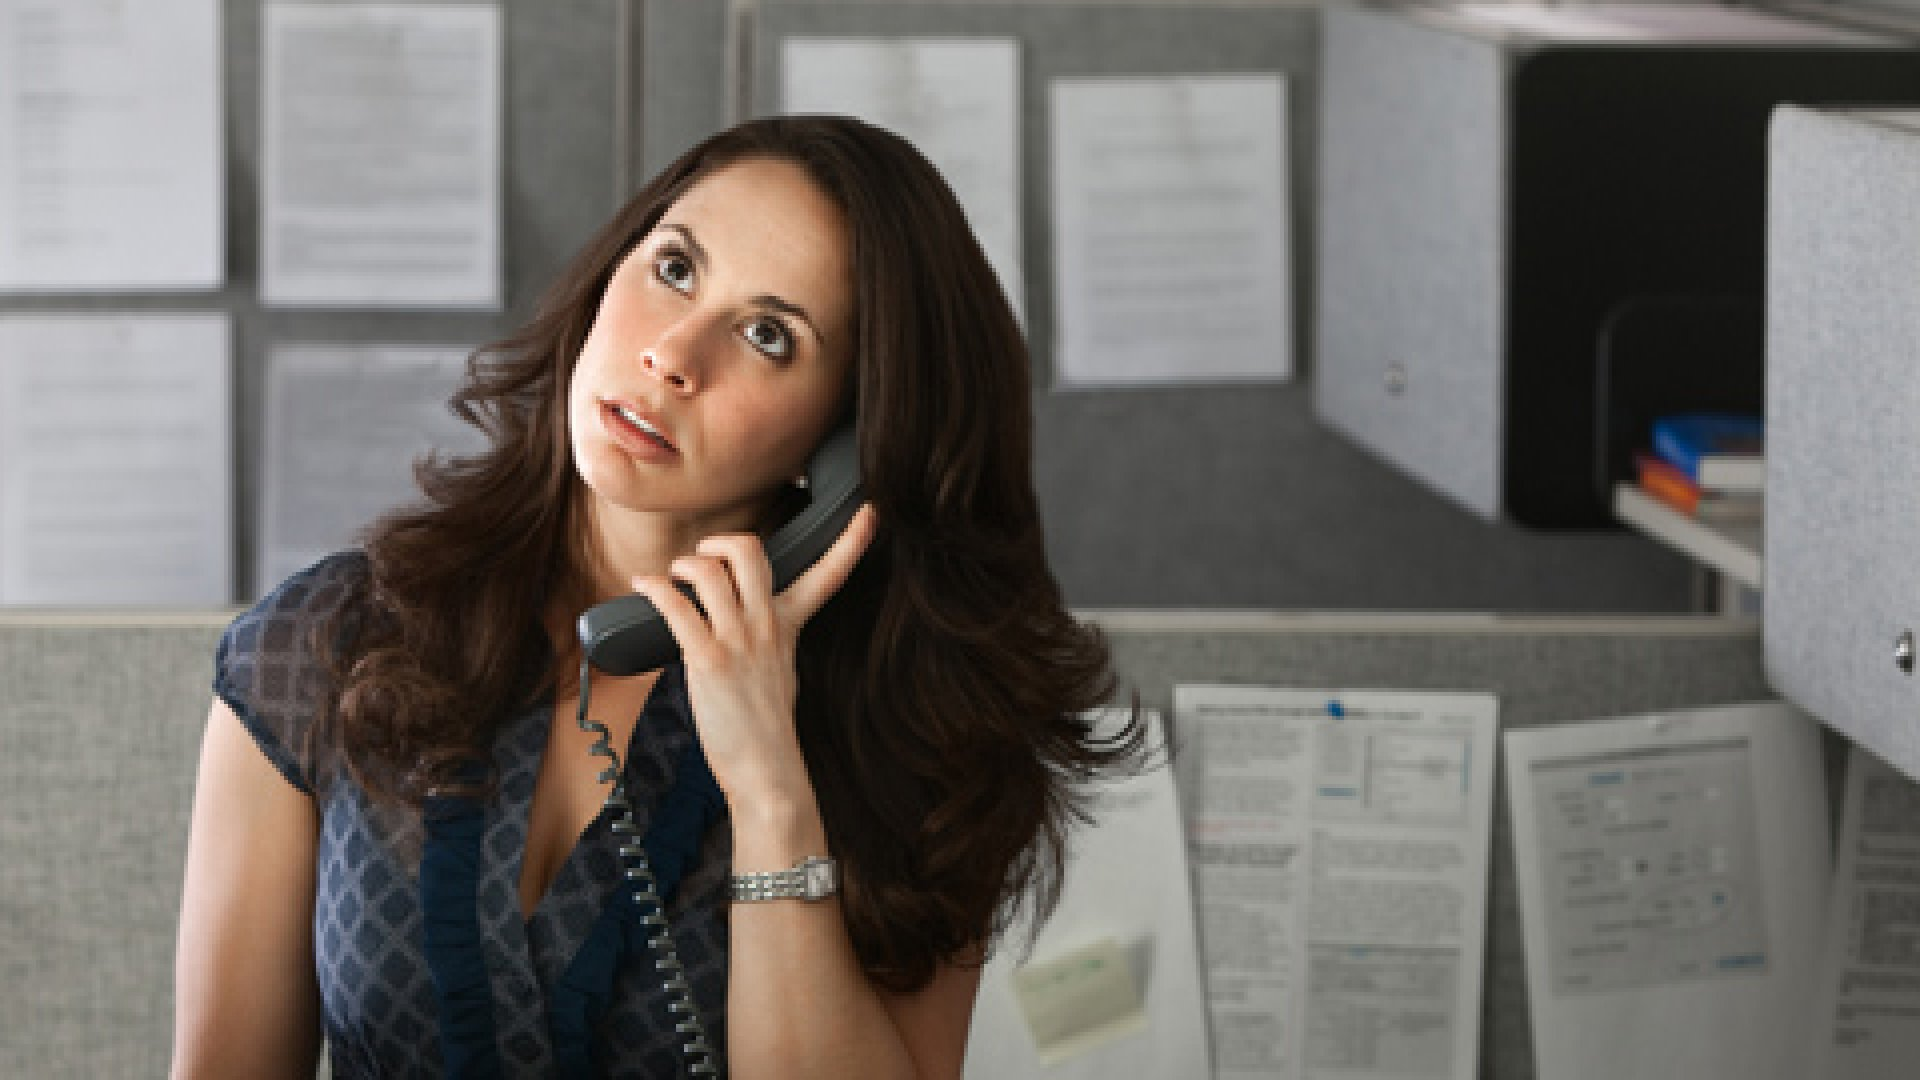 Top 11 Ways to Irritate Your Co-workers